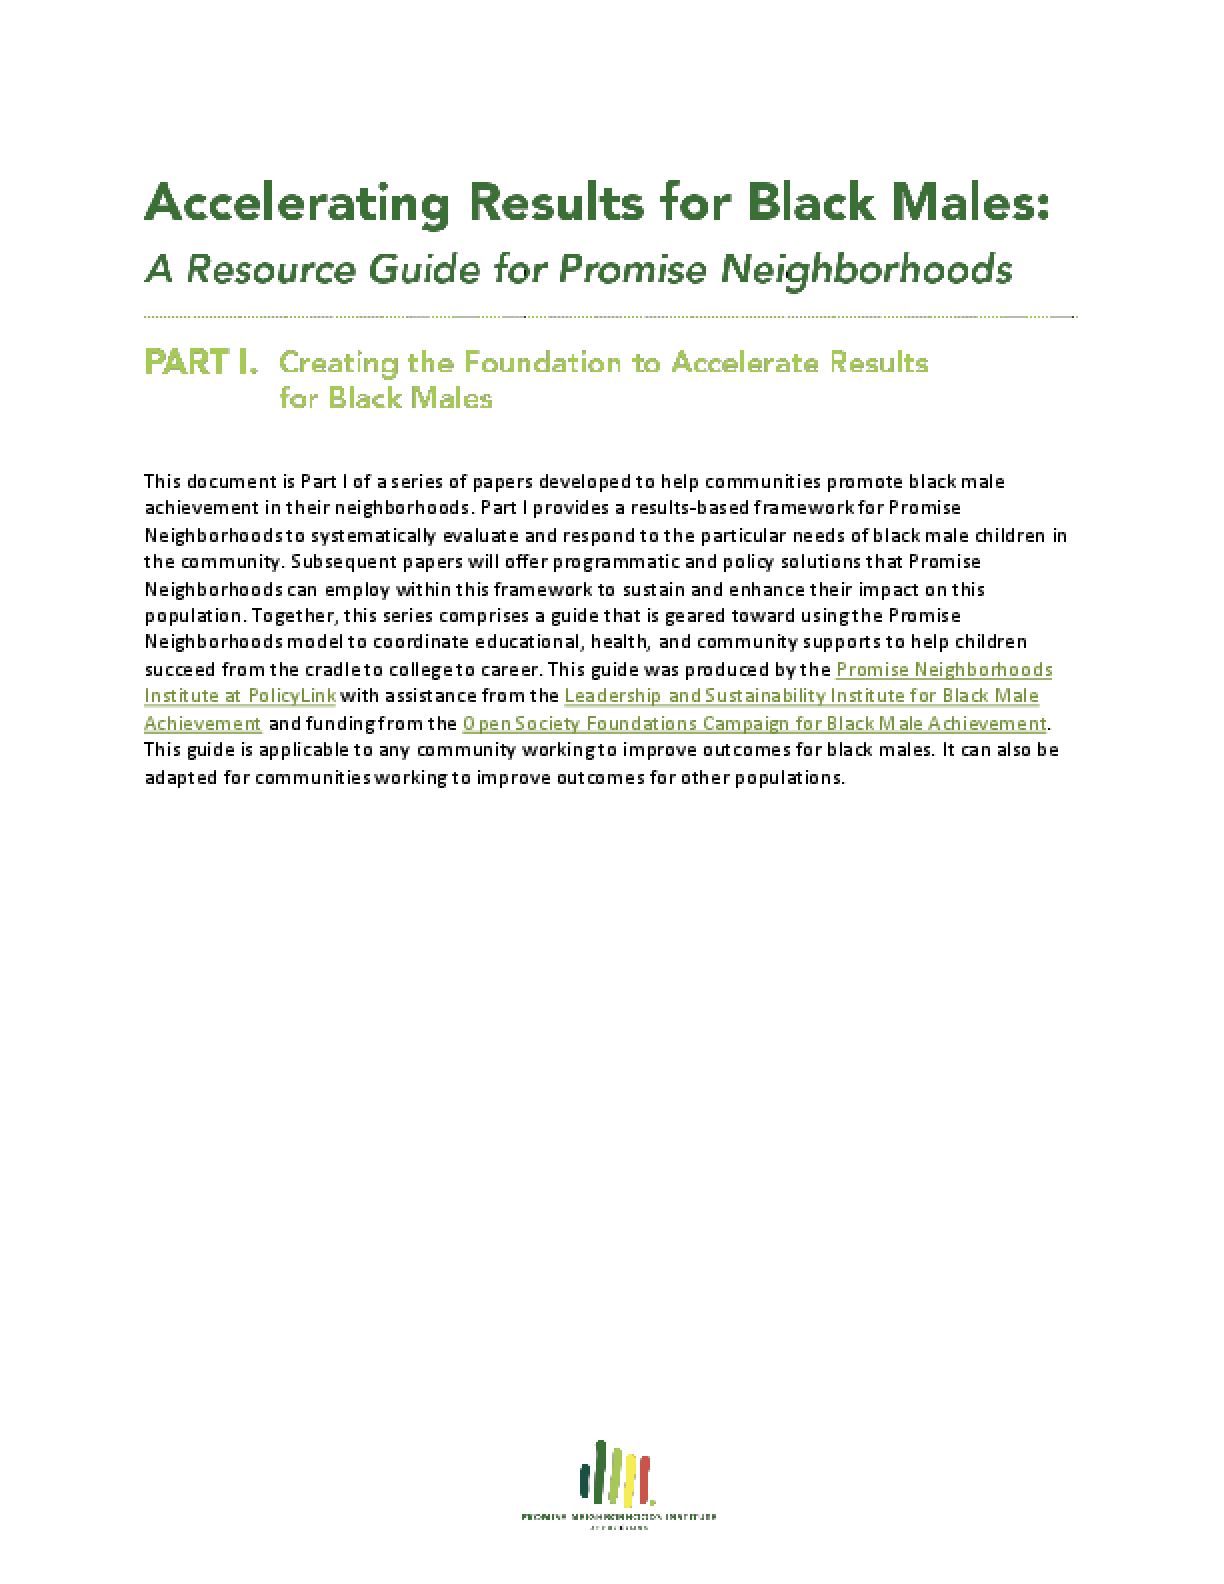 Accelerating Results for Black Males: A Resource Guide for Promise Neighborhoods